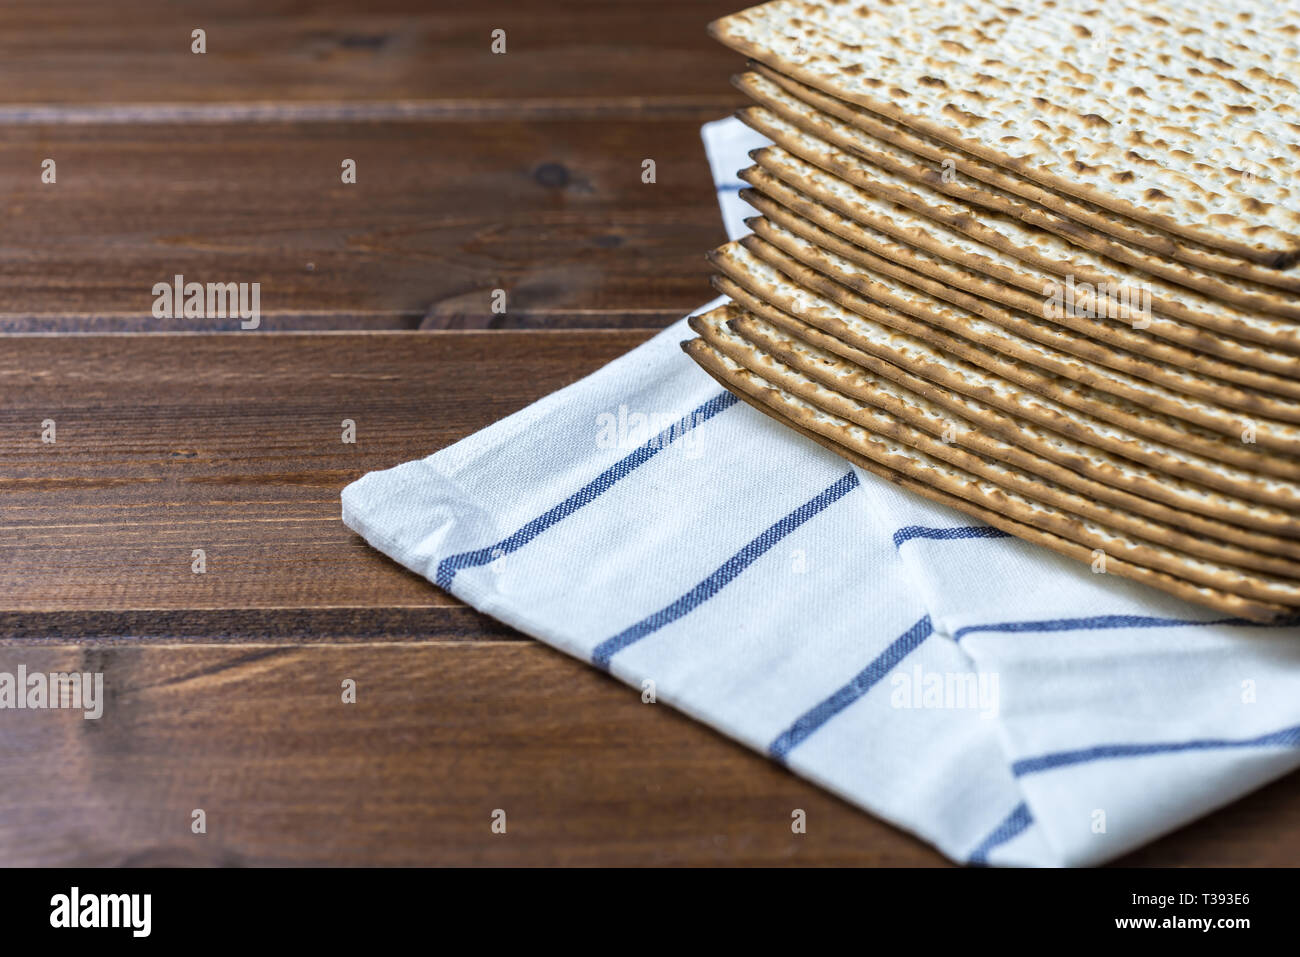 Stack of matzah or matza on a wooden table - Stock Image